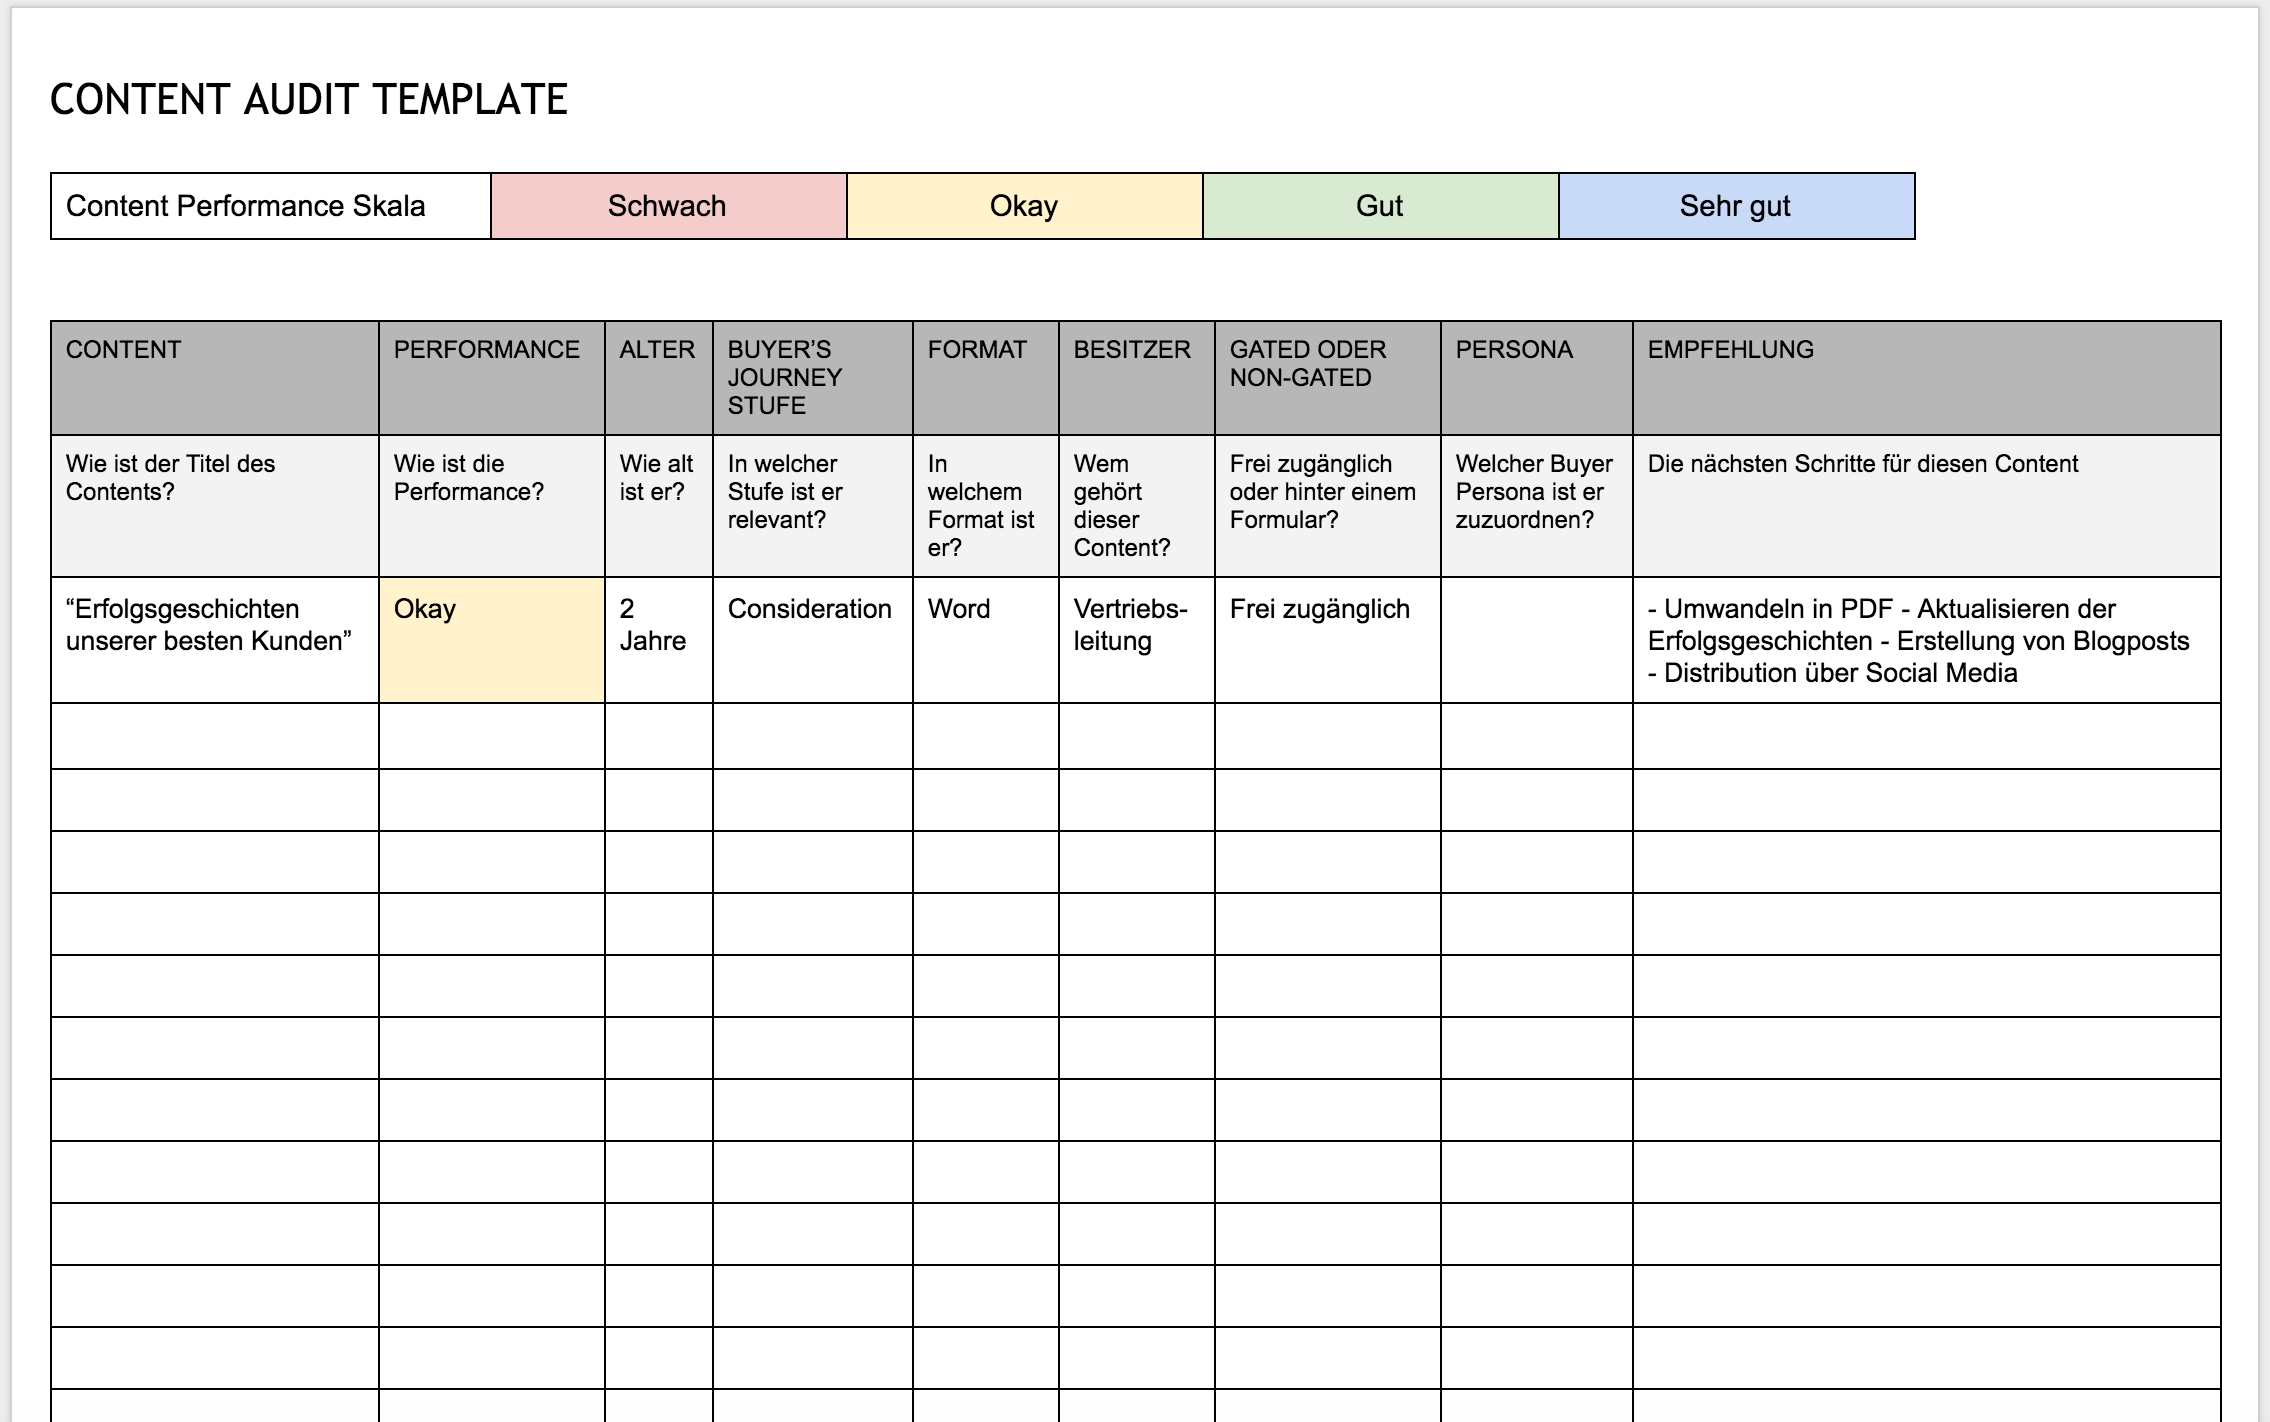 Content Audit Template Beispiel